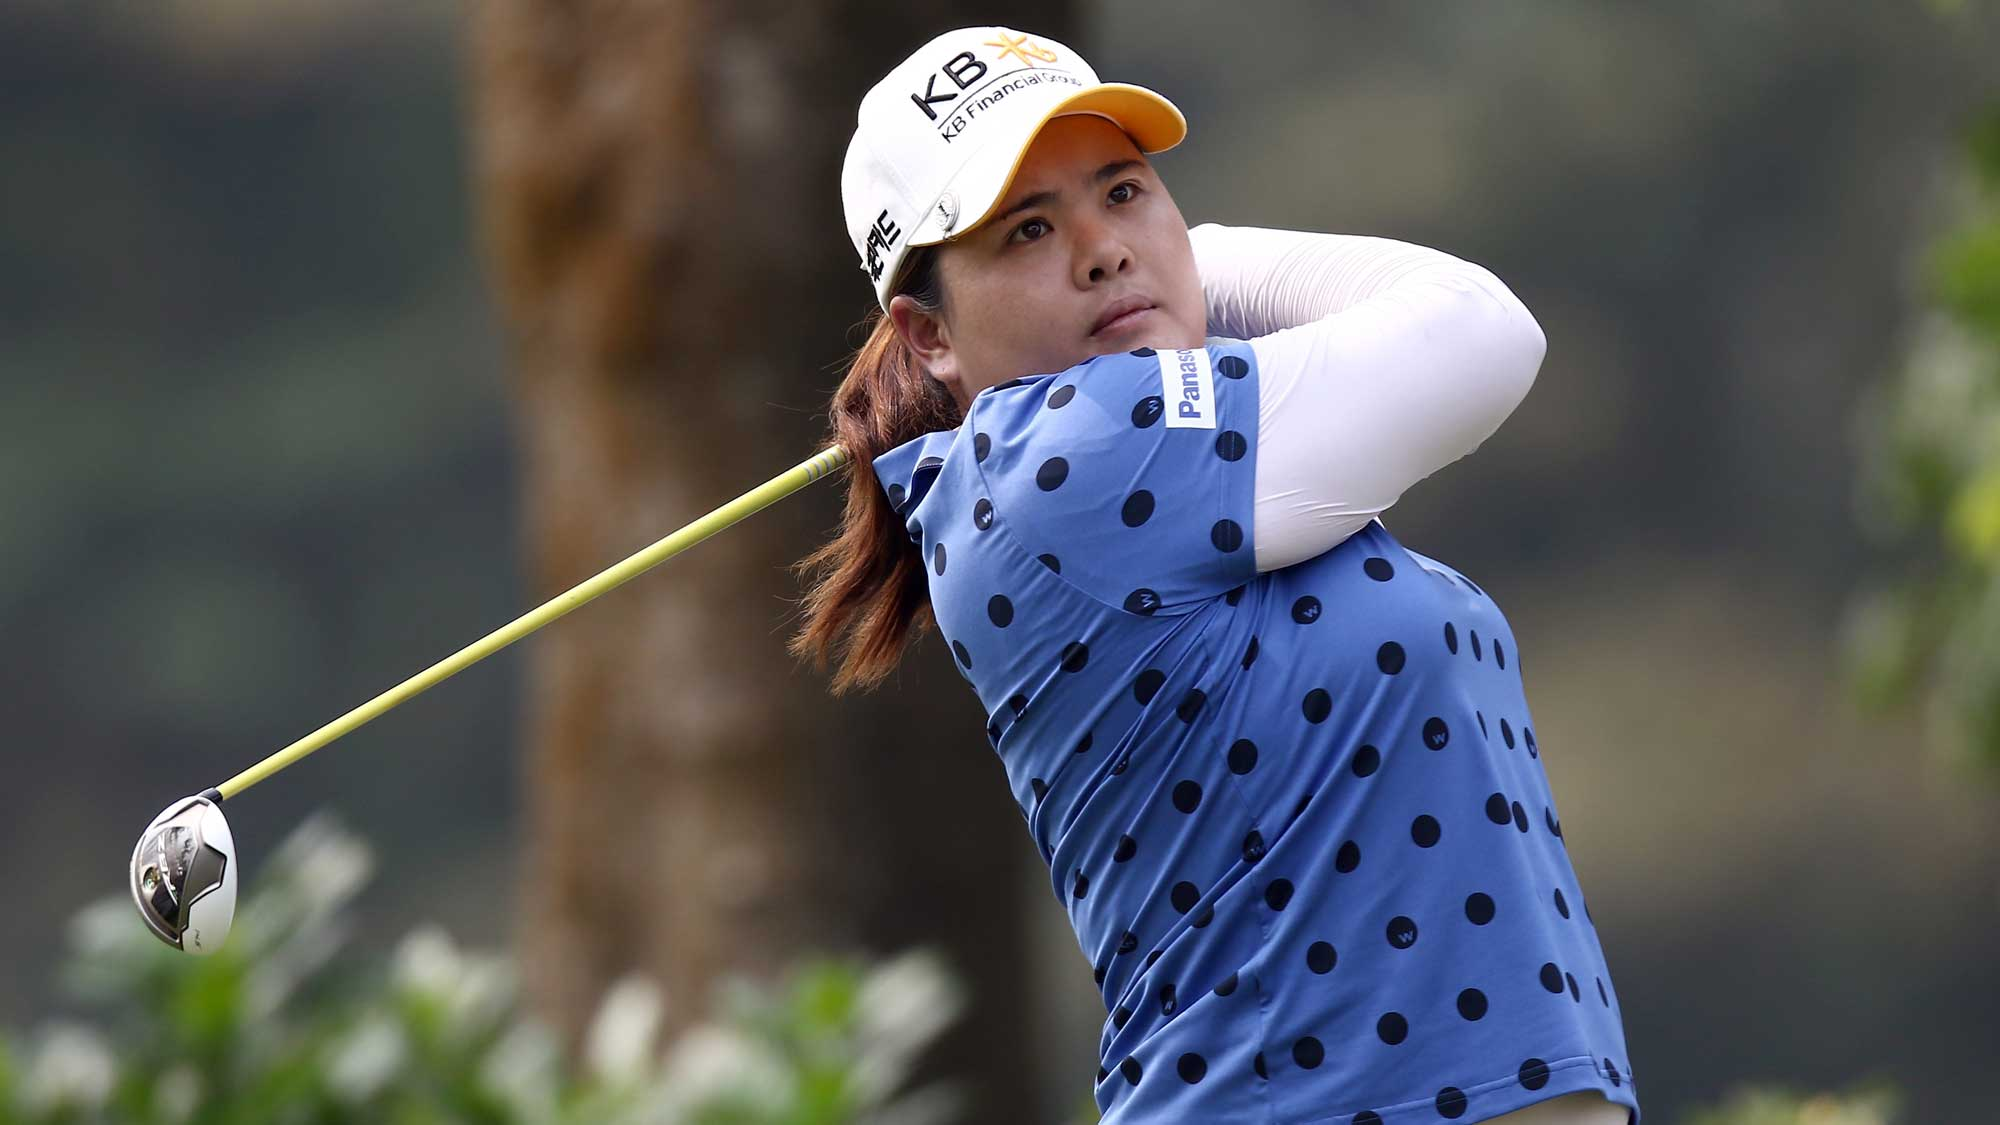 Inbee Park of South Korea watches her tee shot on the 4th hole during round three of the Sime Darby LPGA Tour at Kuala Lumpur Golf & Country Club